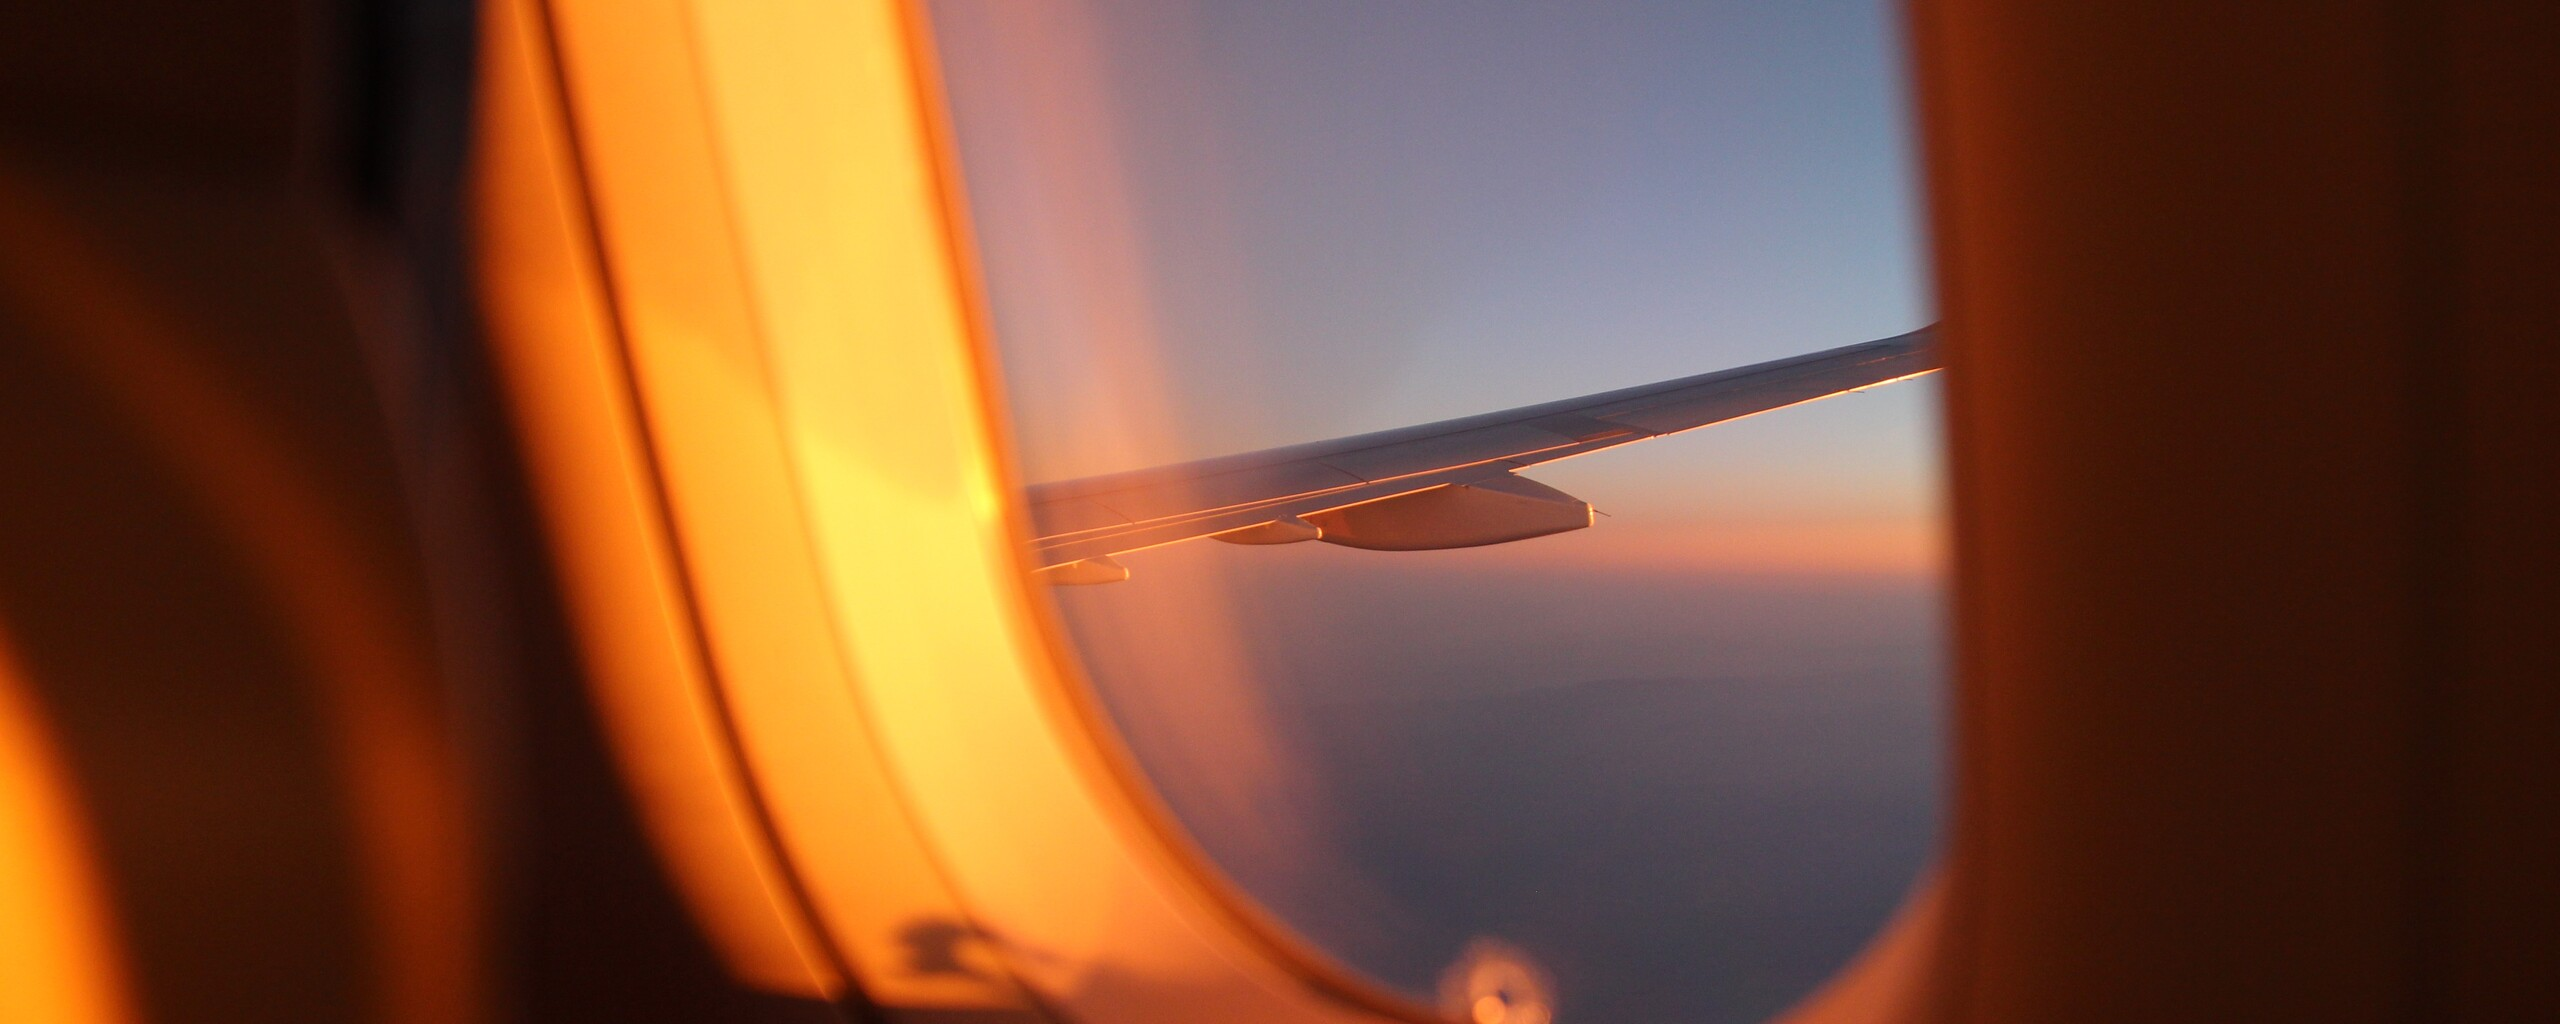 outside-plane-view-5k-iz.jpg